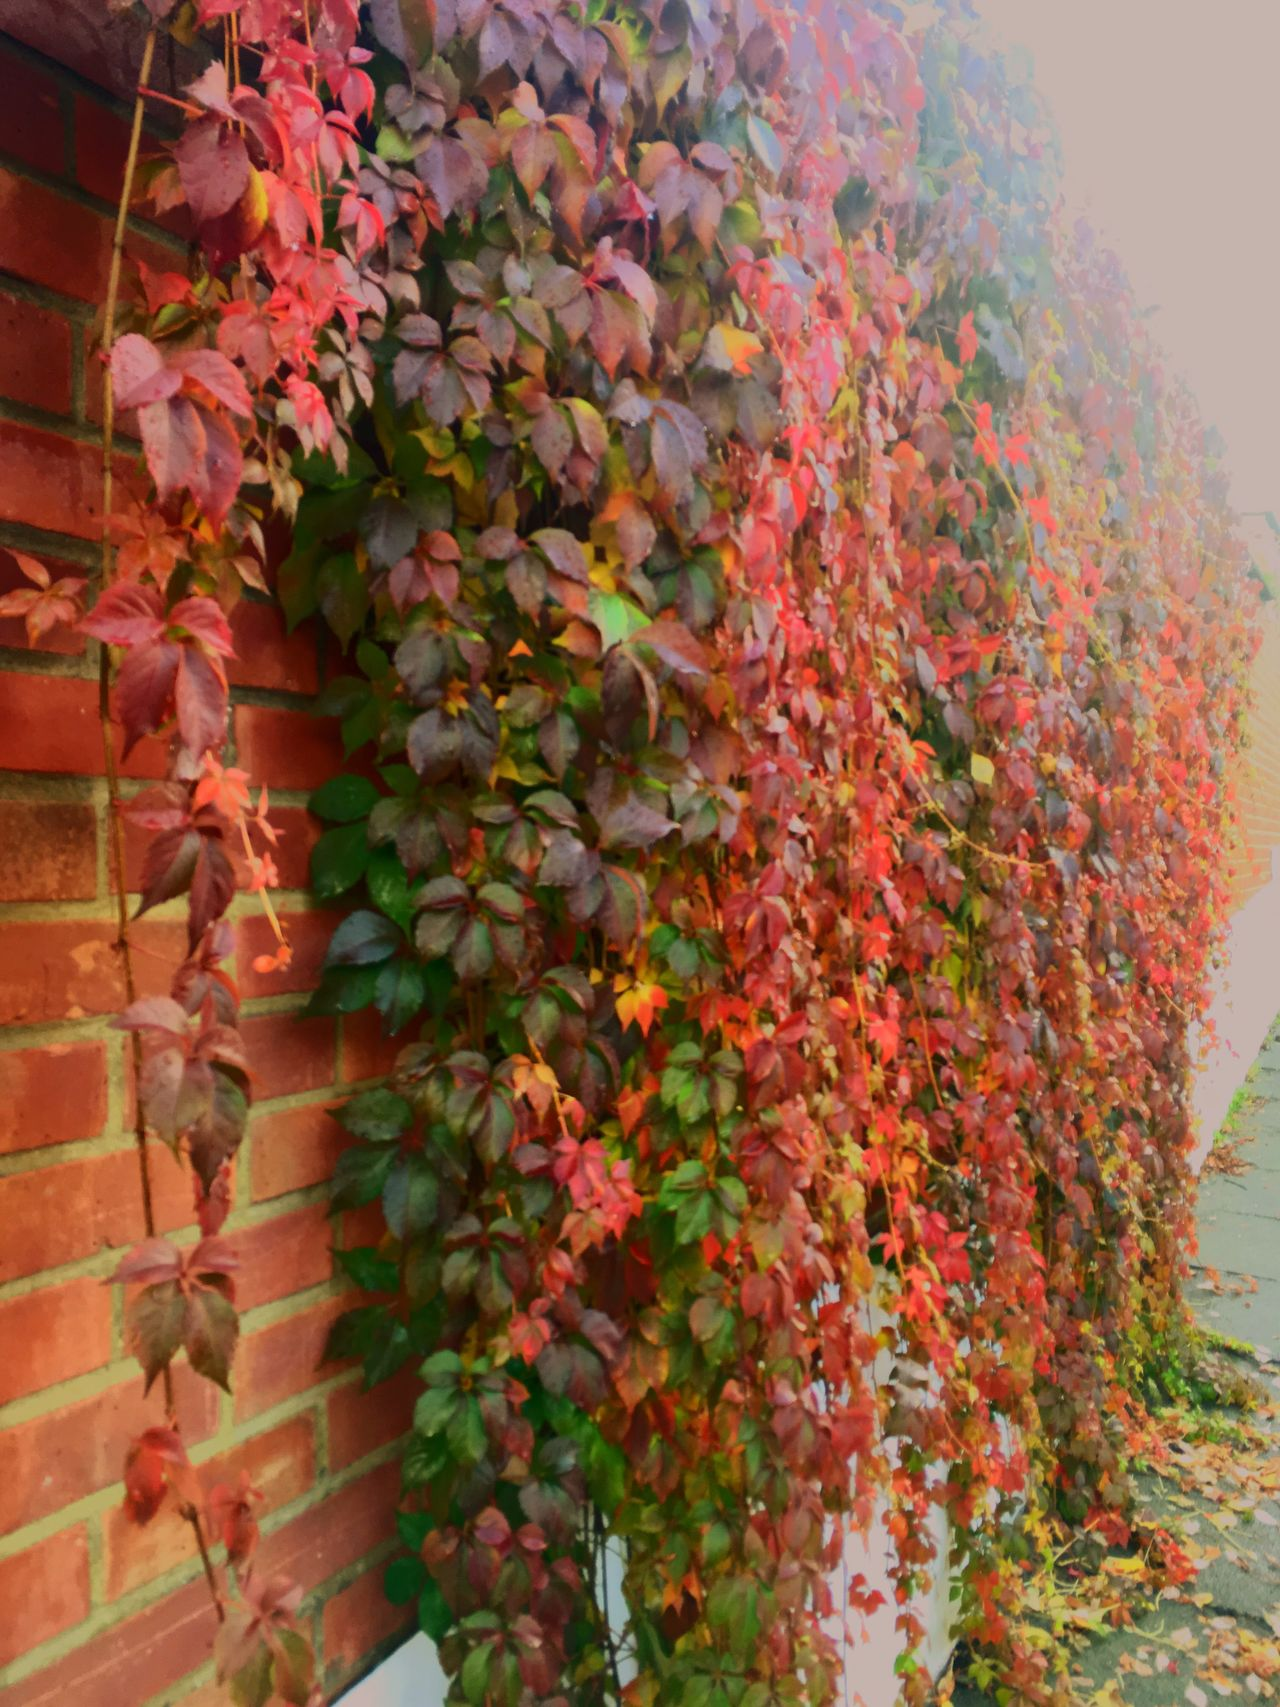 Colors and patterns Growth Flower Plant Freshness Leaf Beauty In Nature Wall - Building Feature Creeper Plant Nature Fragility Red Pink Color Day Blossom Springtime Flower Head Petal TakeoverContrast Fall Fall Beauty Autumn Autumn Colors Fall Colors London Lifestyle Exploring Style